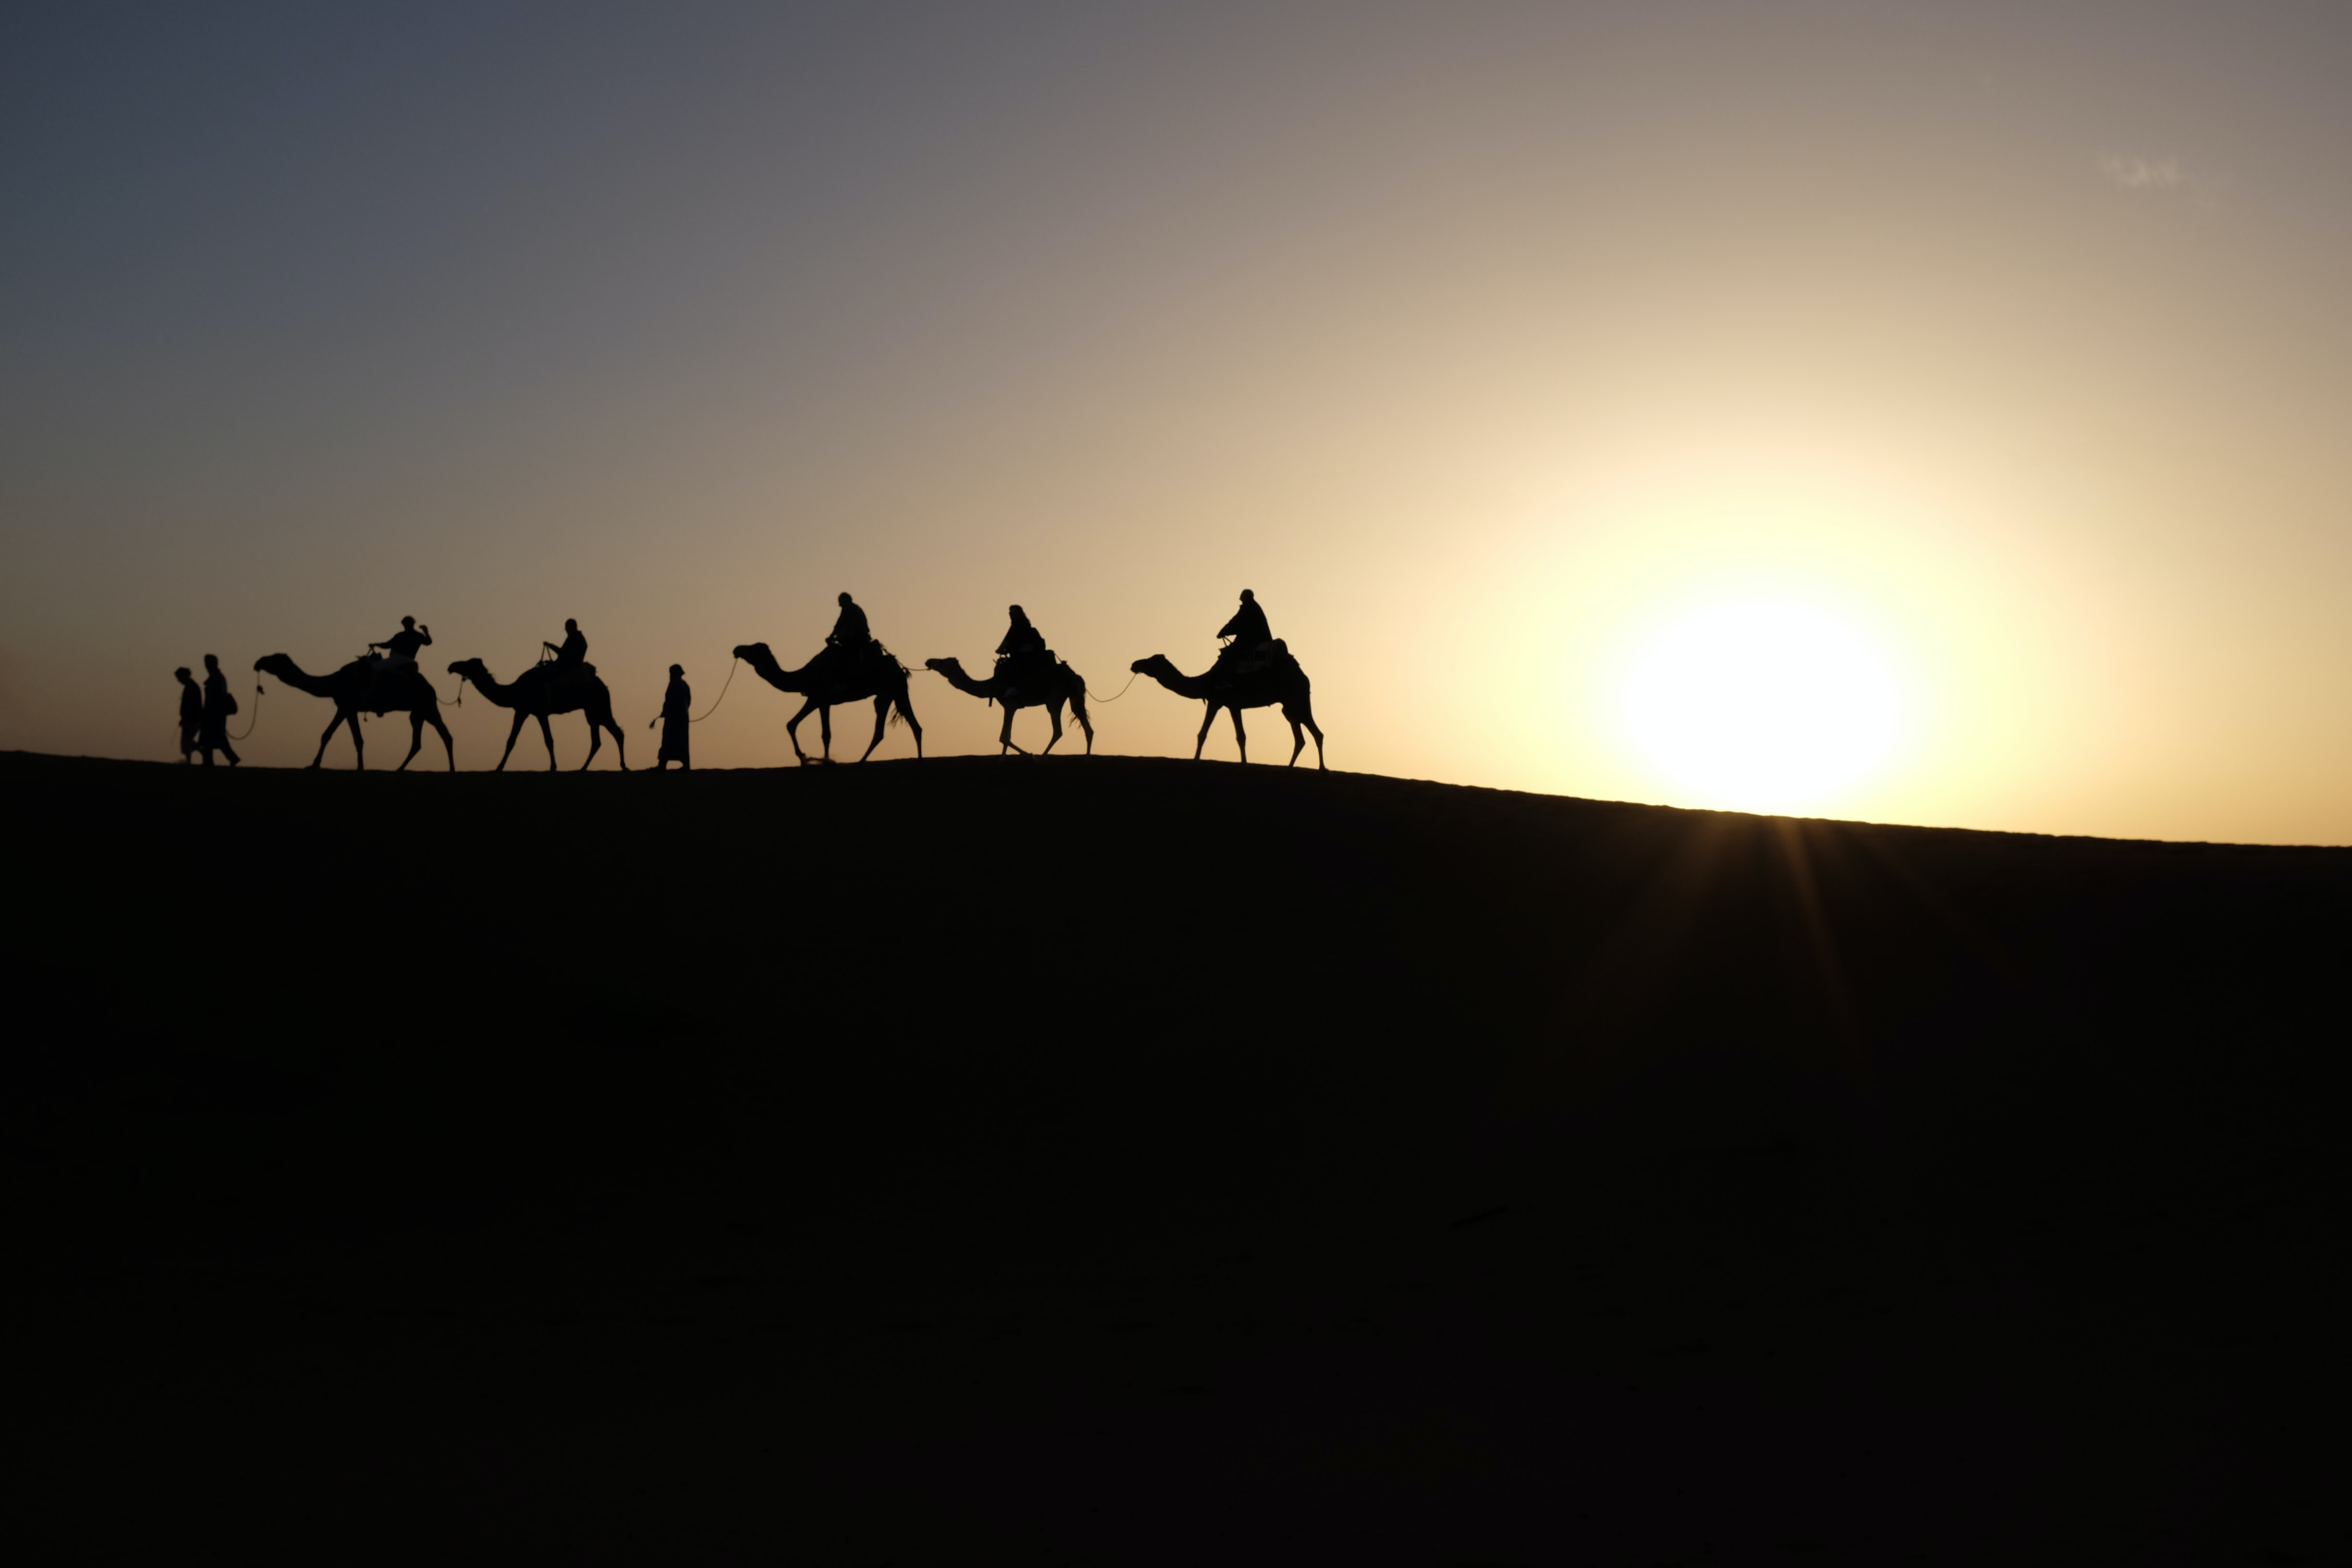 Silhouette of people walking with camels along the horizon in the Sahara desert